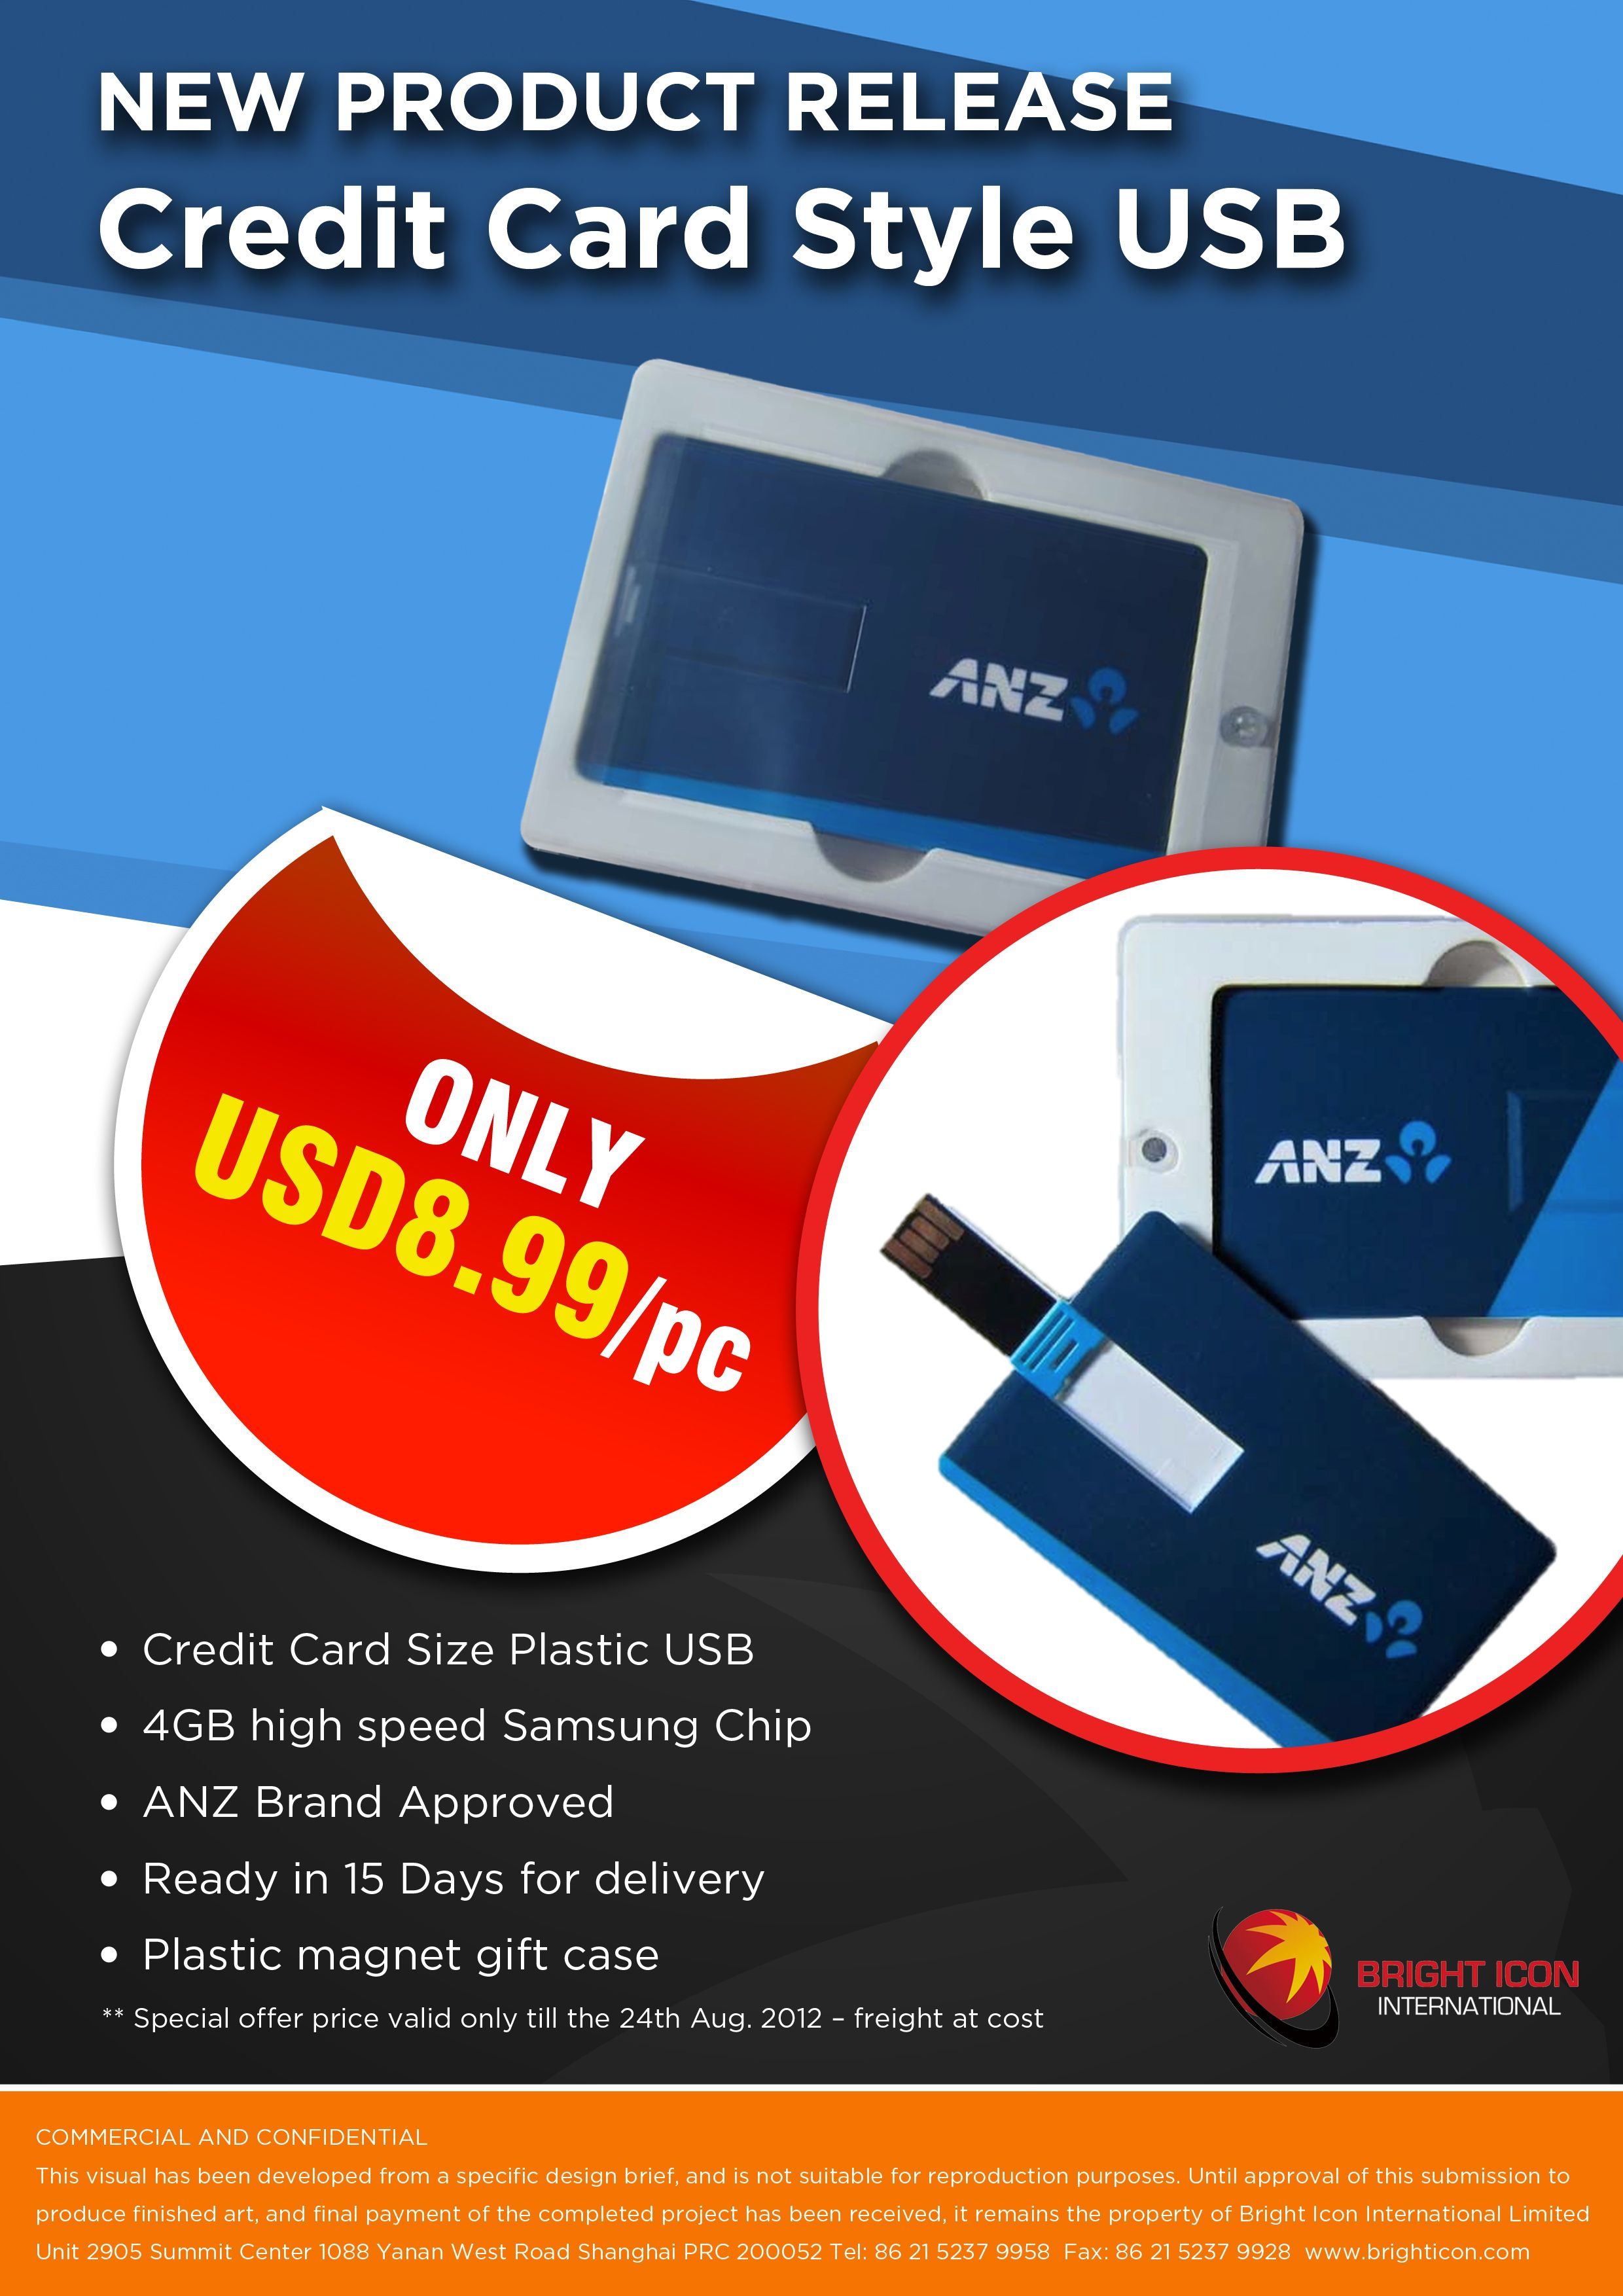 ANZ - Credit Card USB - Designed by Bright Icon